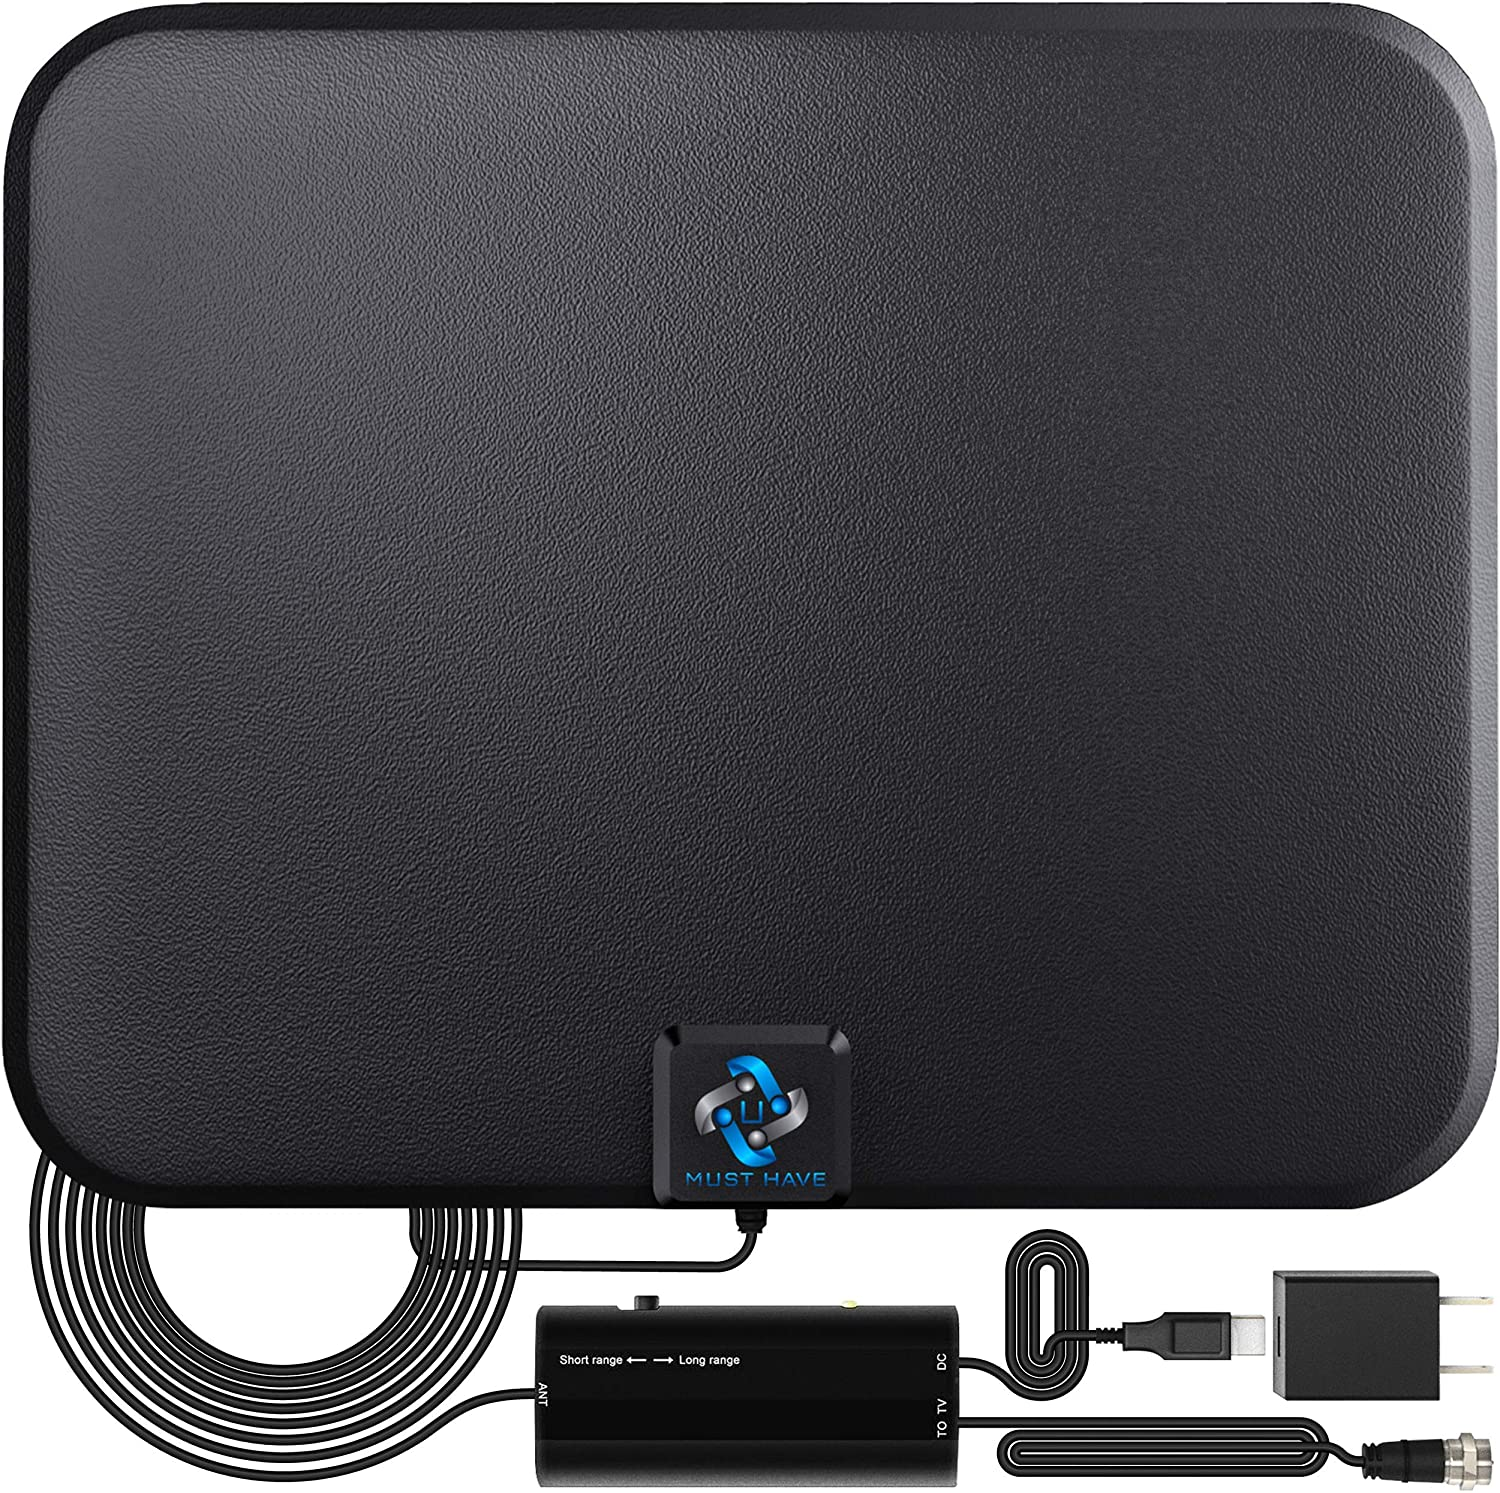 U MUST HAVE Amplified Indoor HD Digital TV Antenna, 180-Mile Range